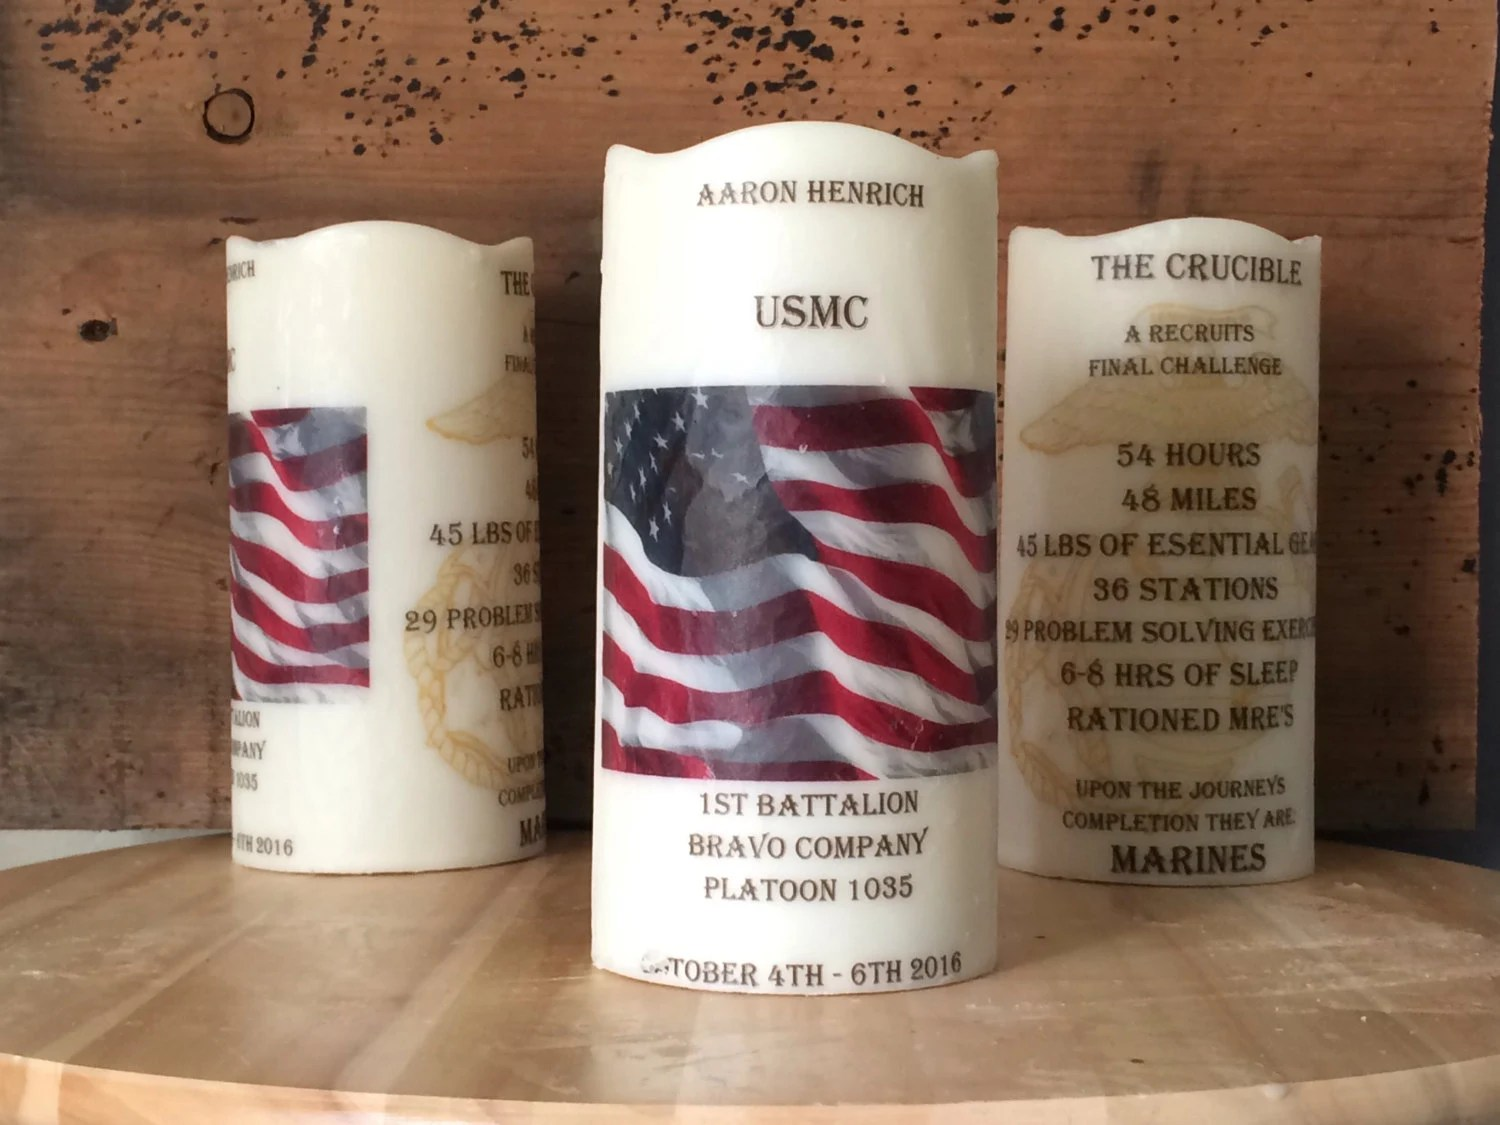 photo regarding Crucible Candle Printable known as Maritime Crucible Candles - Studying Mars